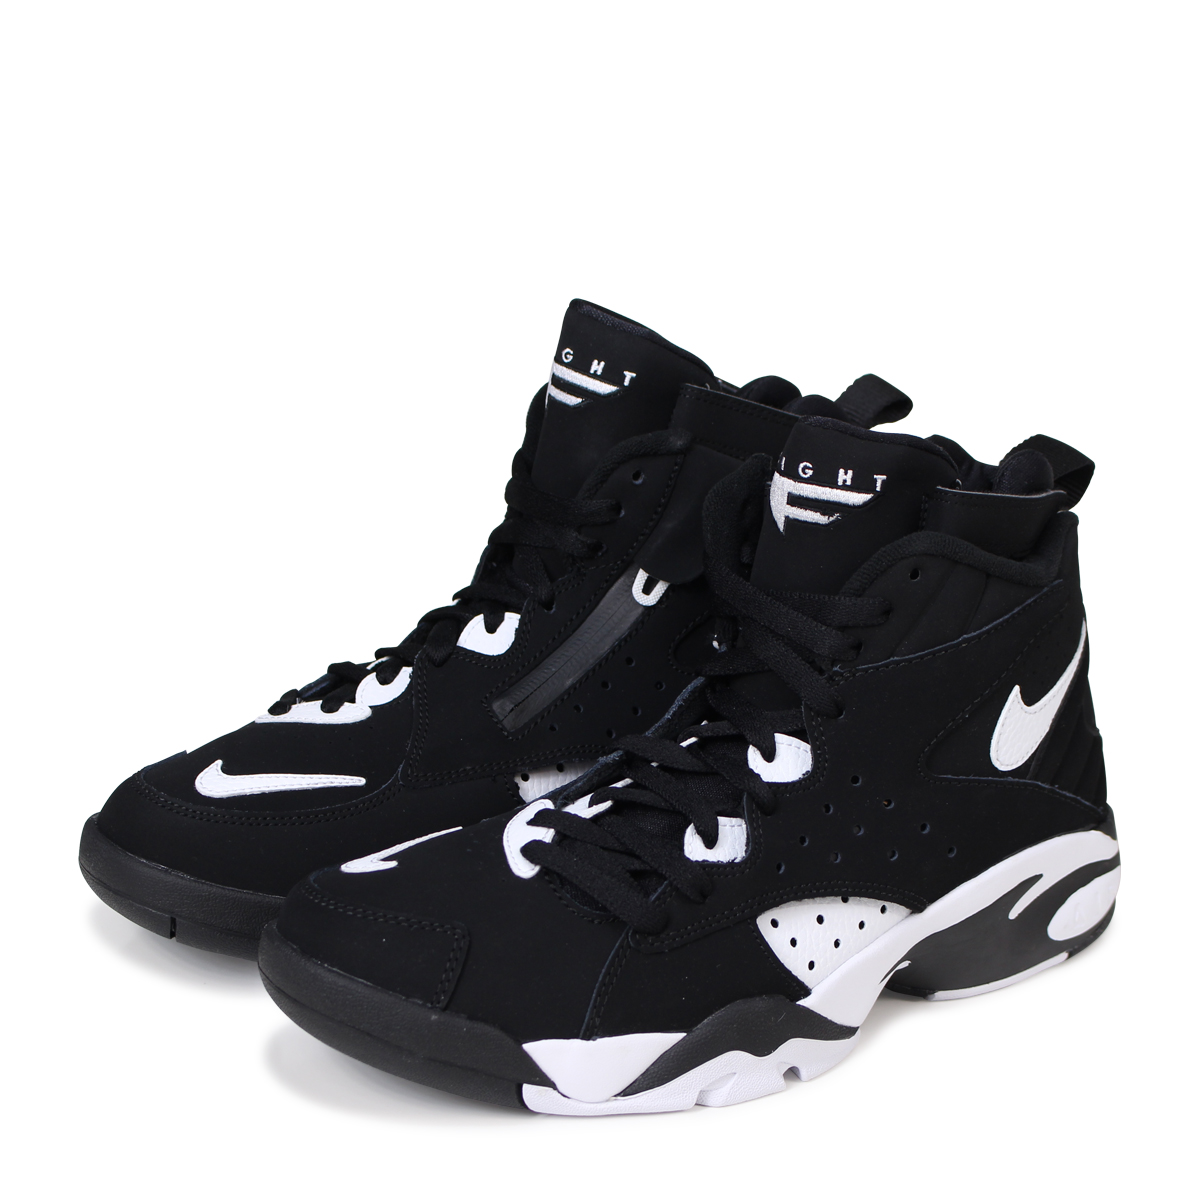 d6648b19e782 NIKE AIR MAESTRO II LTD Nike air maestro 2 sneakers men AH8511-001 black   load planned Shinnyu load in reservation product 5 19 containing   185